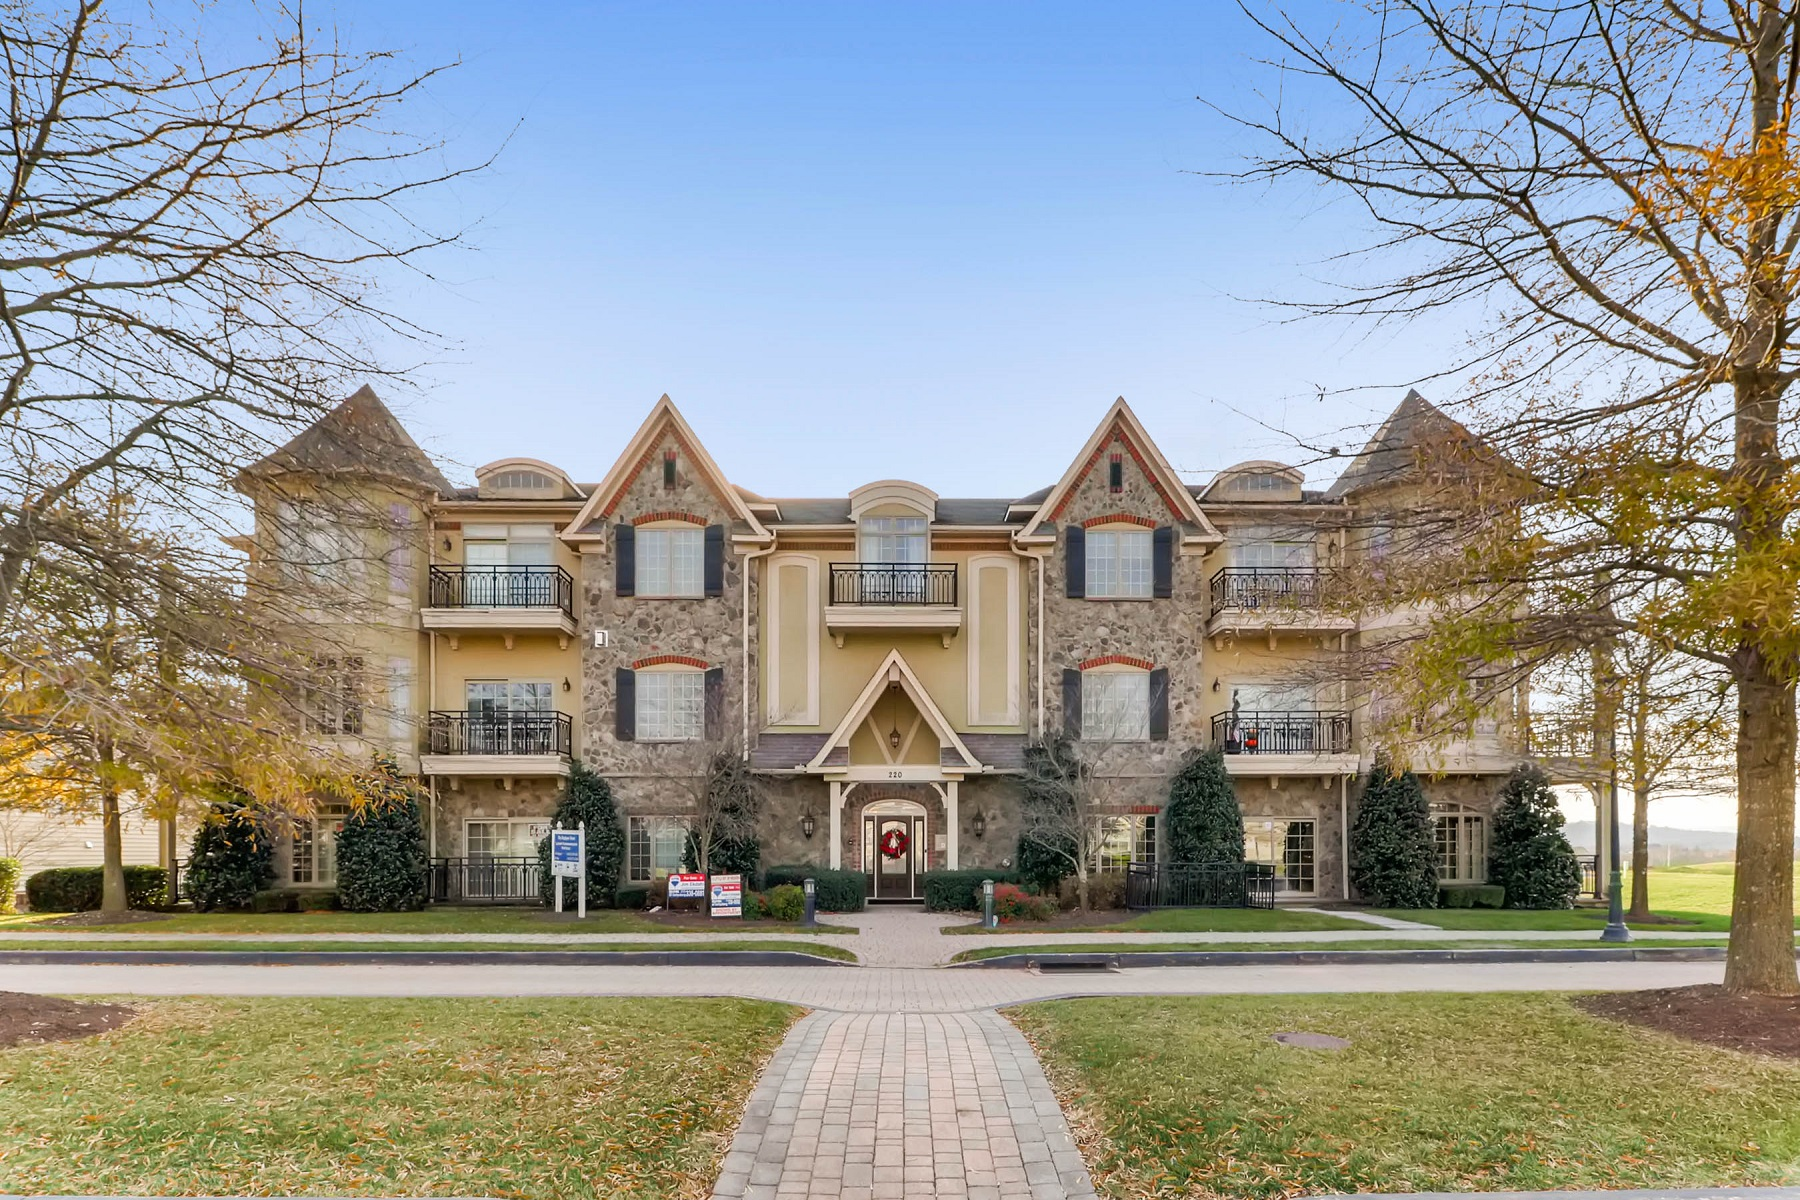 Condominium for Sale at The Links At Gettysburg 220 Savannah Drive #203 Gettysburg, Pennsylvania 17325 United States